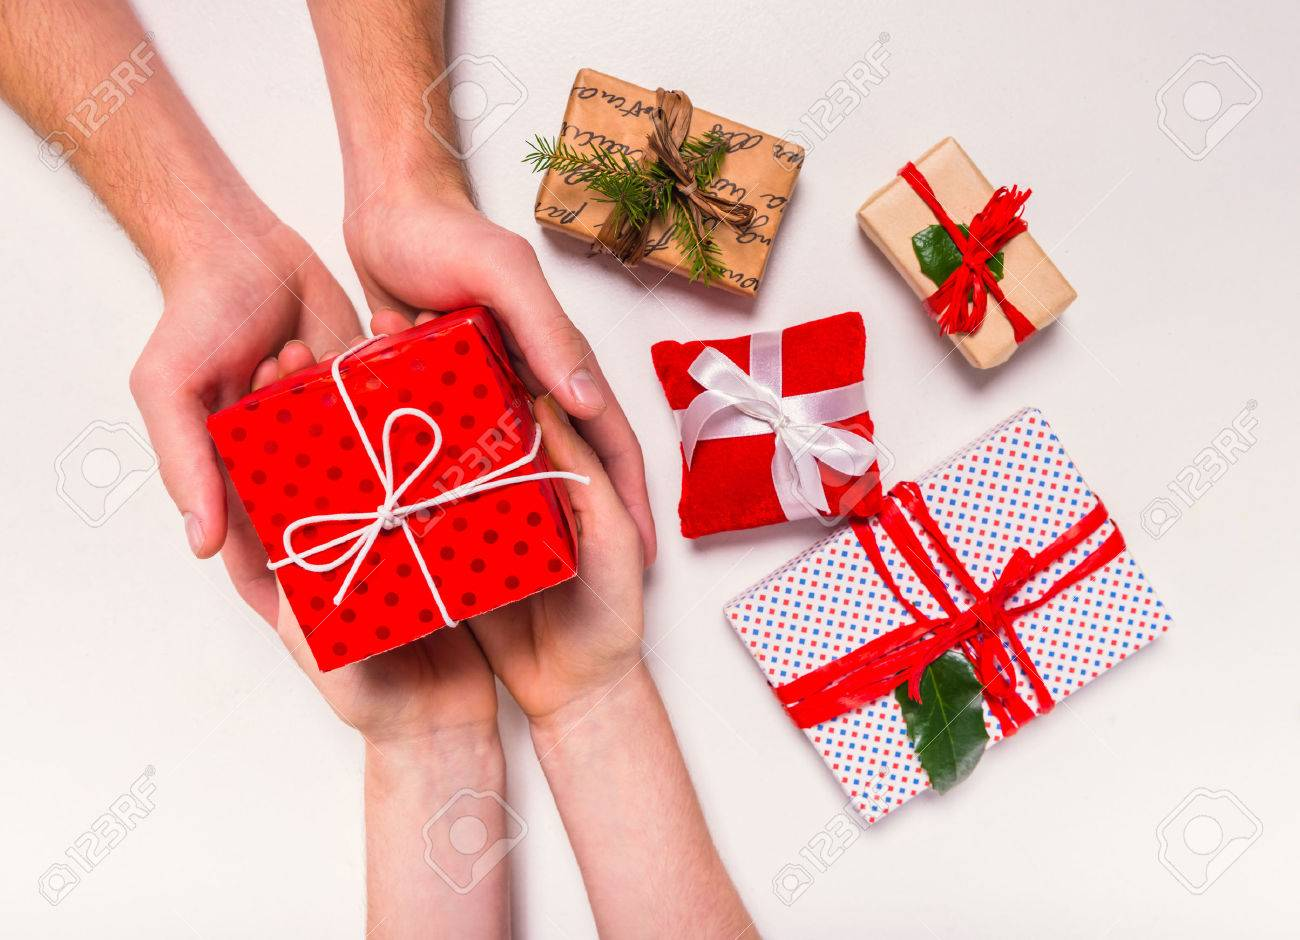 Hand holding box for a gift isolated on a white background Standard-Bild - 49847659